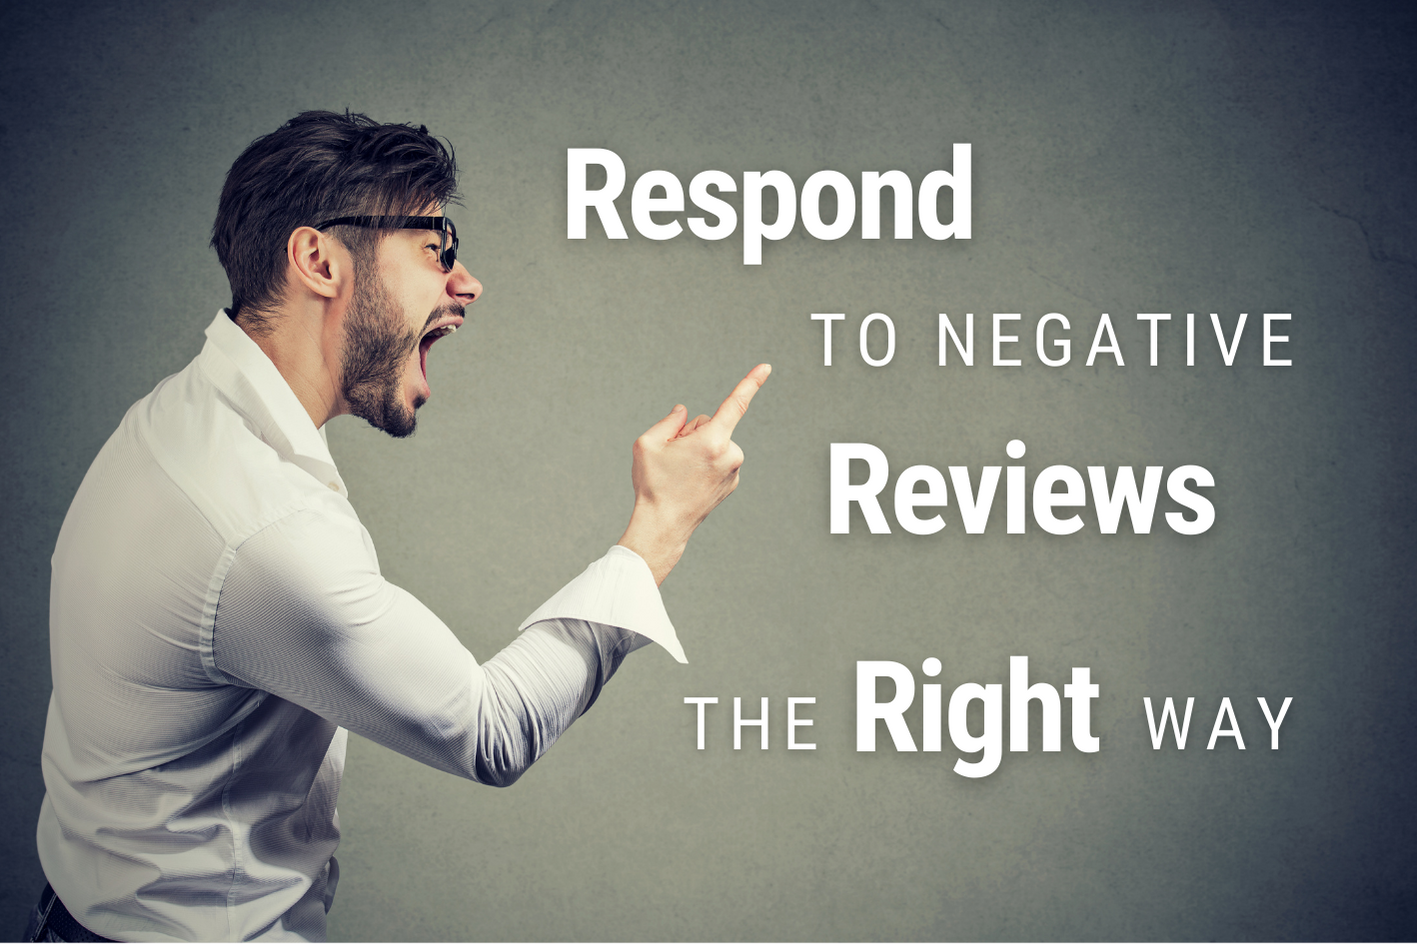 US - How to Respond to Negative Reviews in 2021